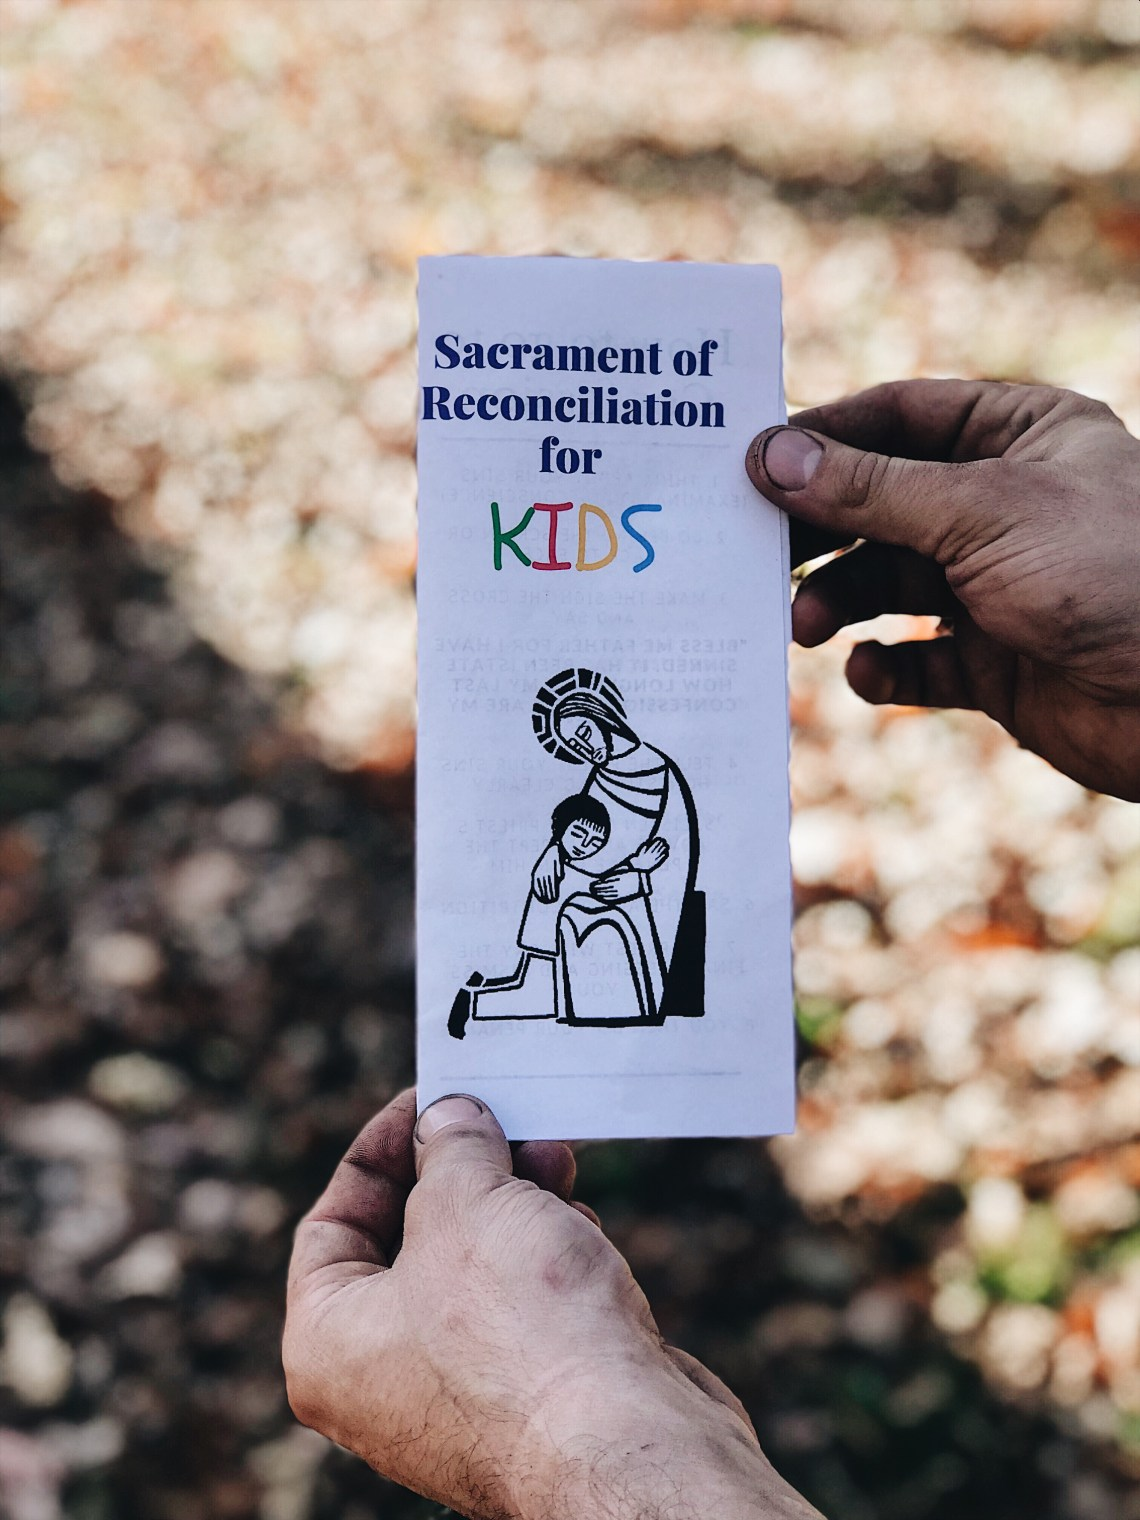 Sacrament of Reconciliation for Kids